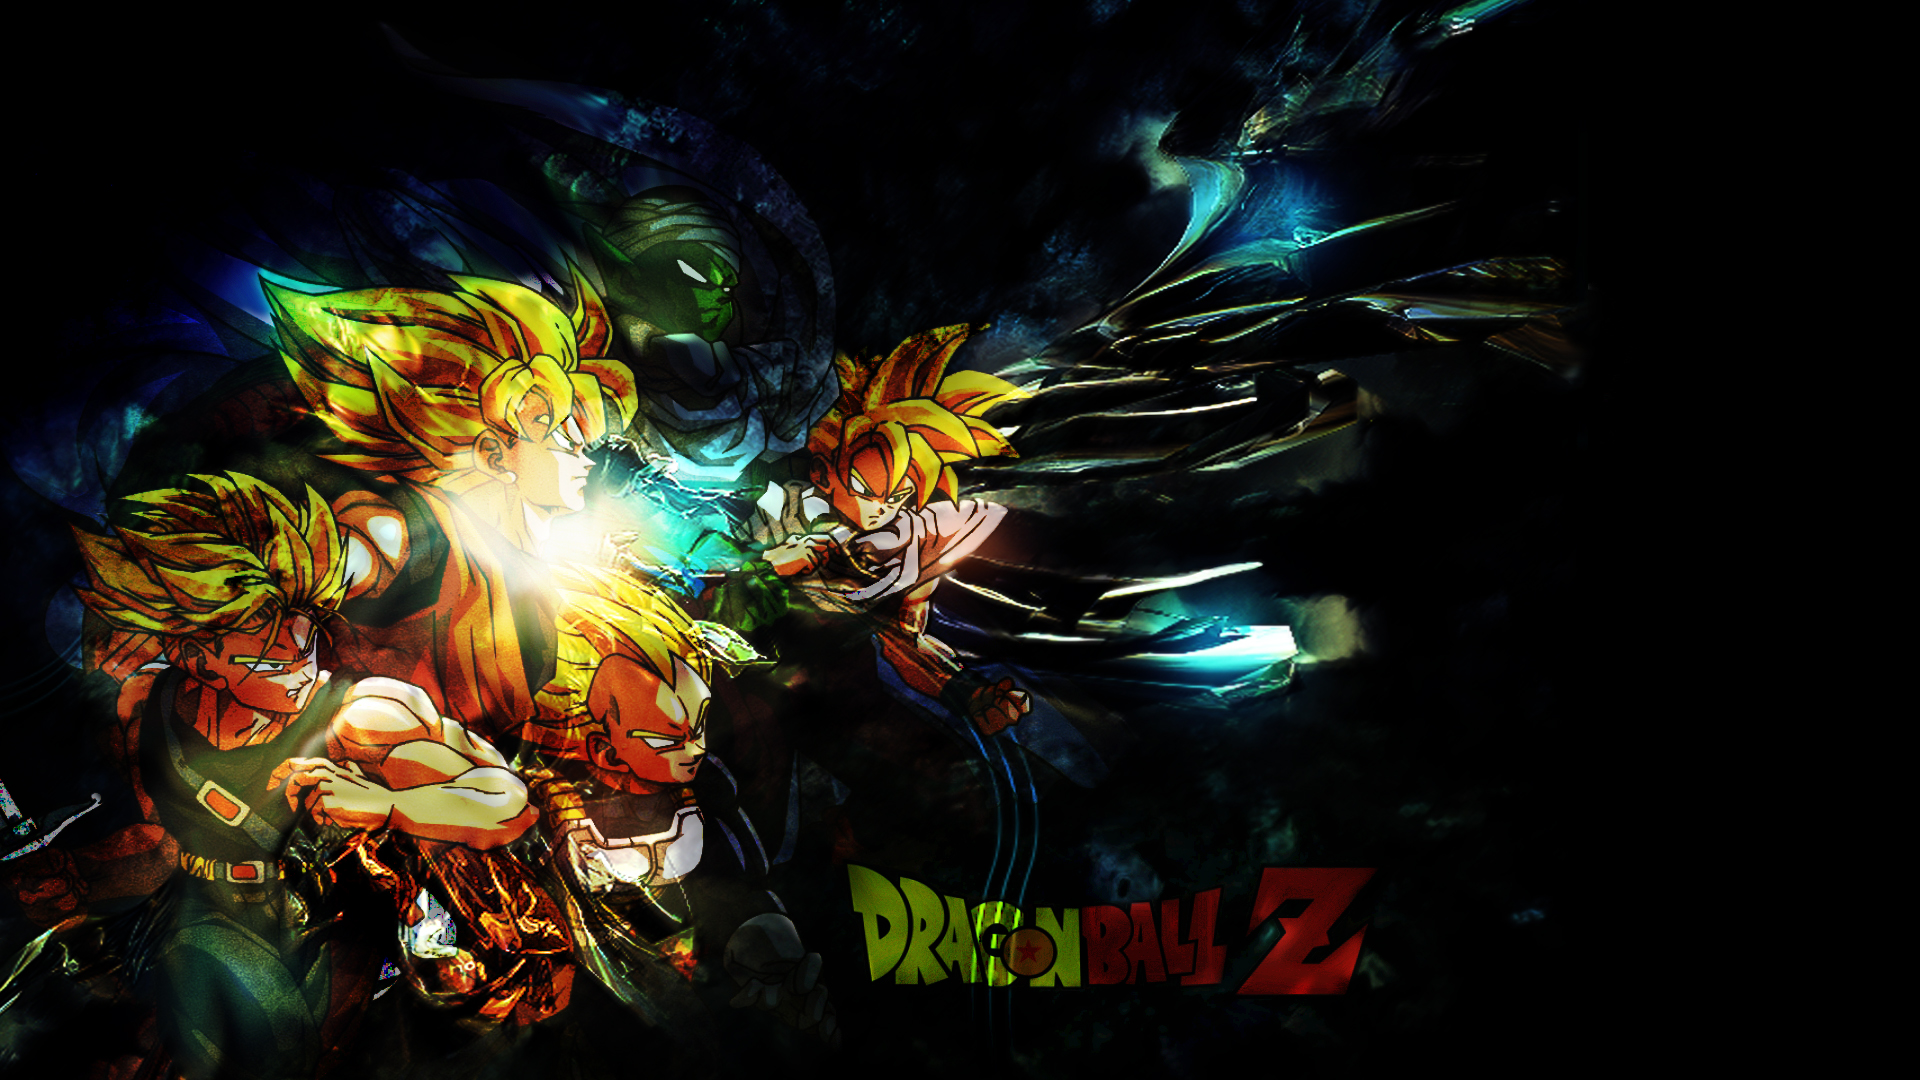 Dragonball z ps3 wallpaper by the potara fusion on deviantart dragonball z ps3 wallpaper by the potara fusion voltagebd Images